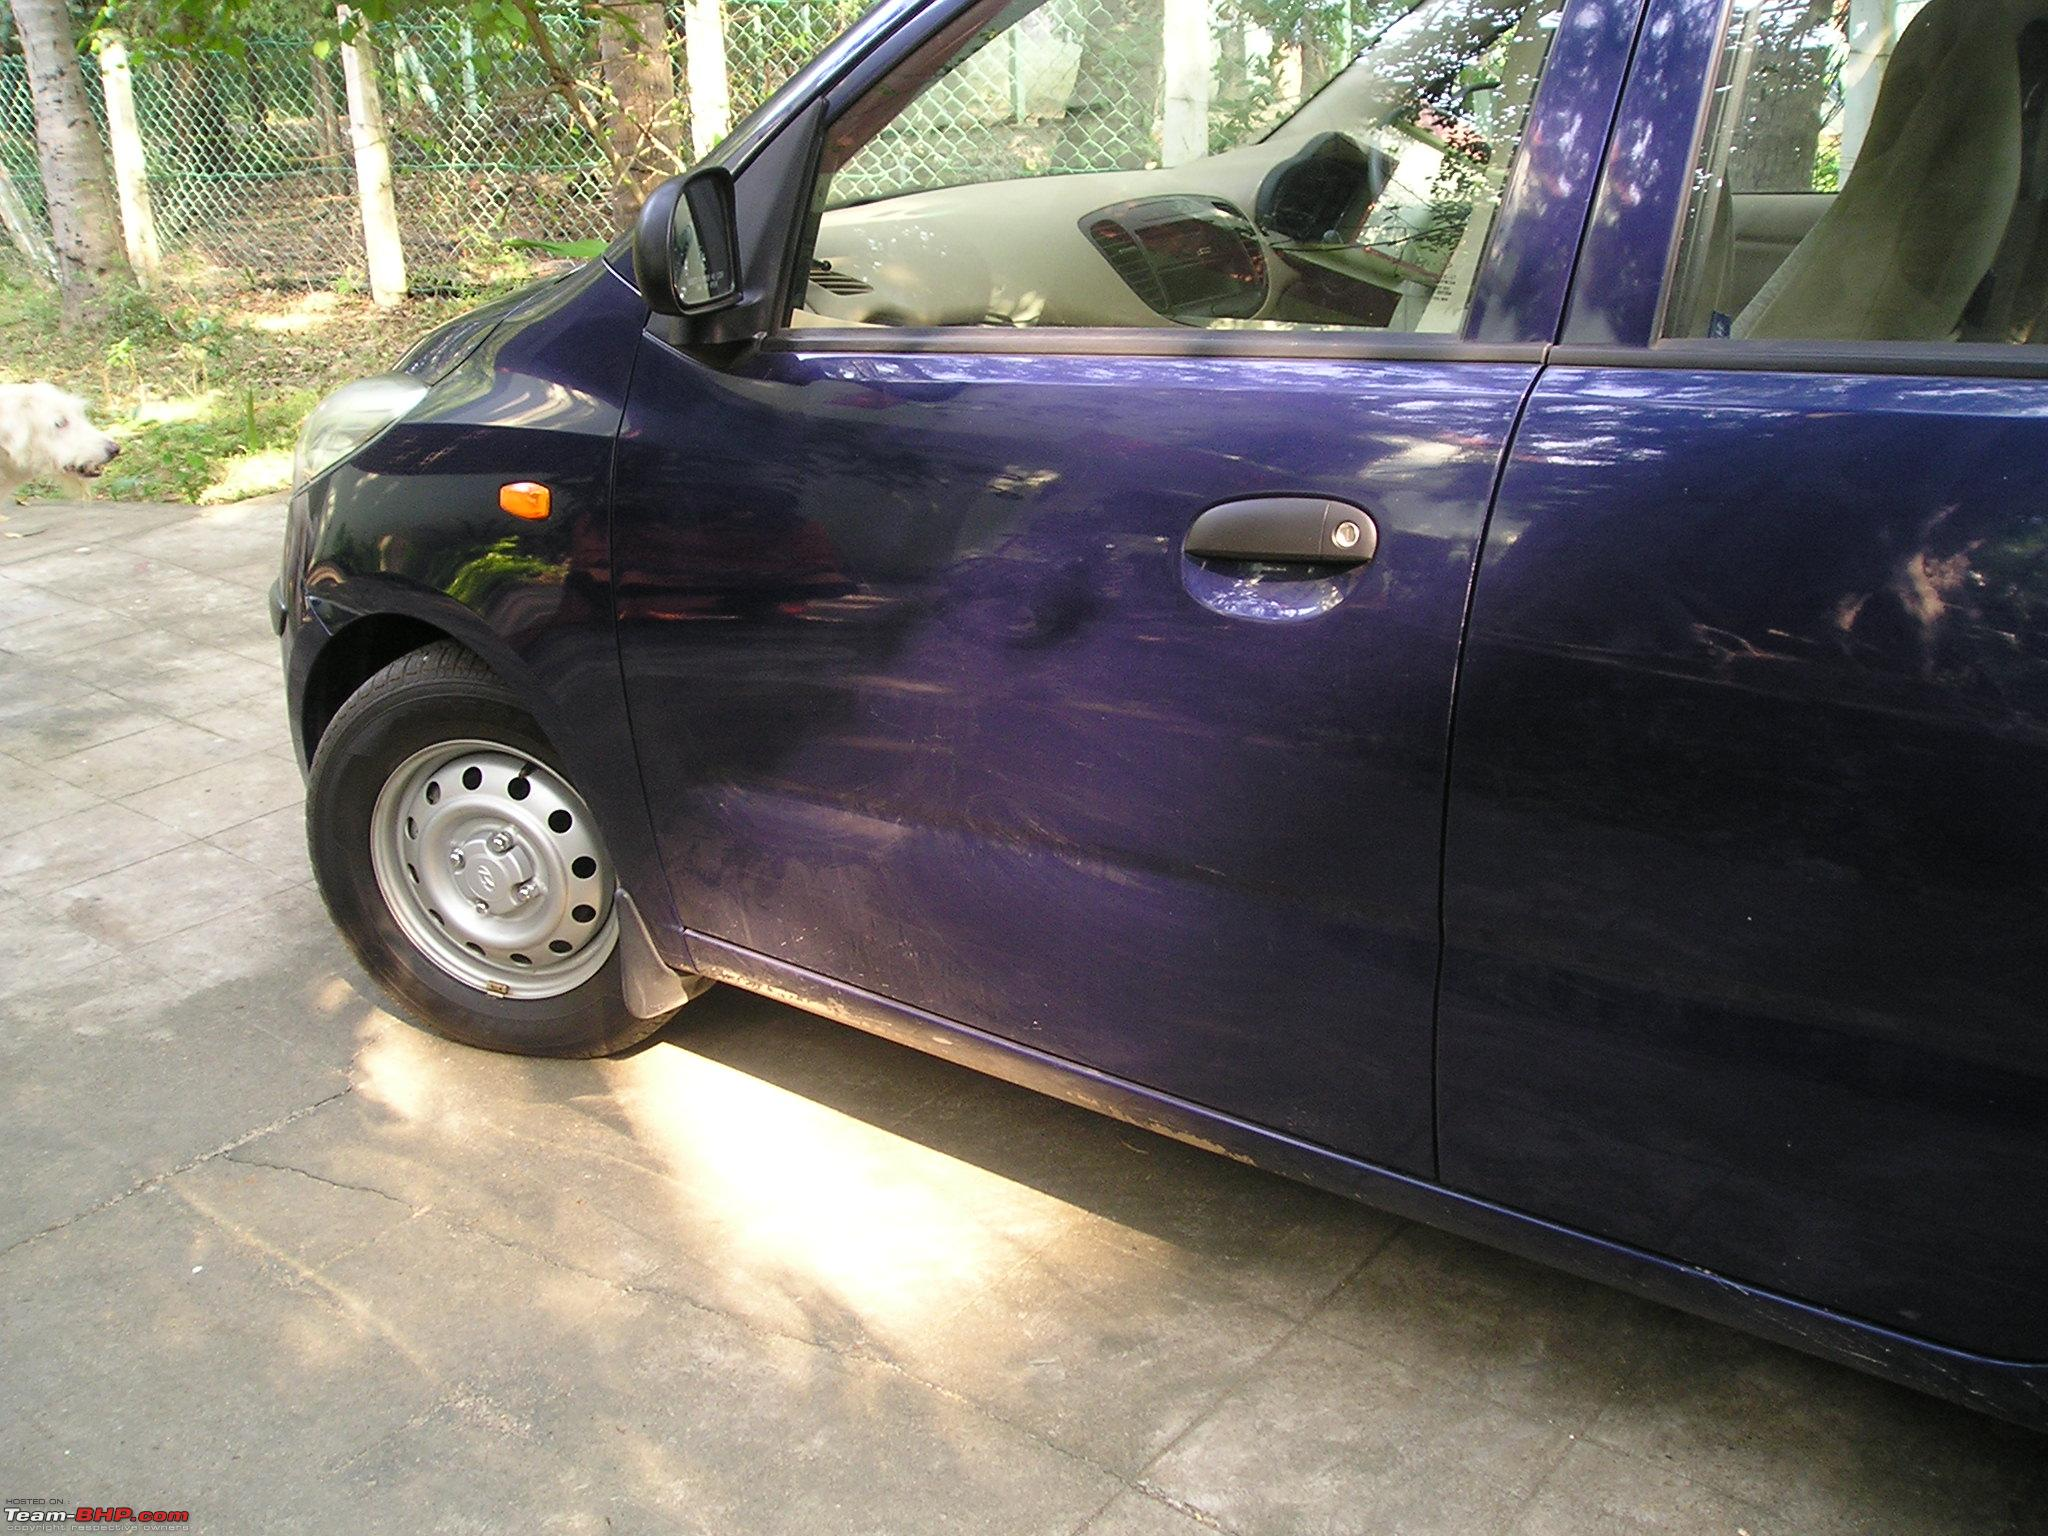 Car Paint Job That Can Be Peeled Off